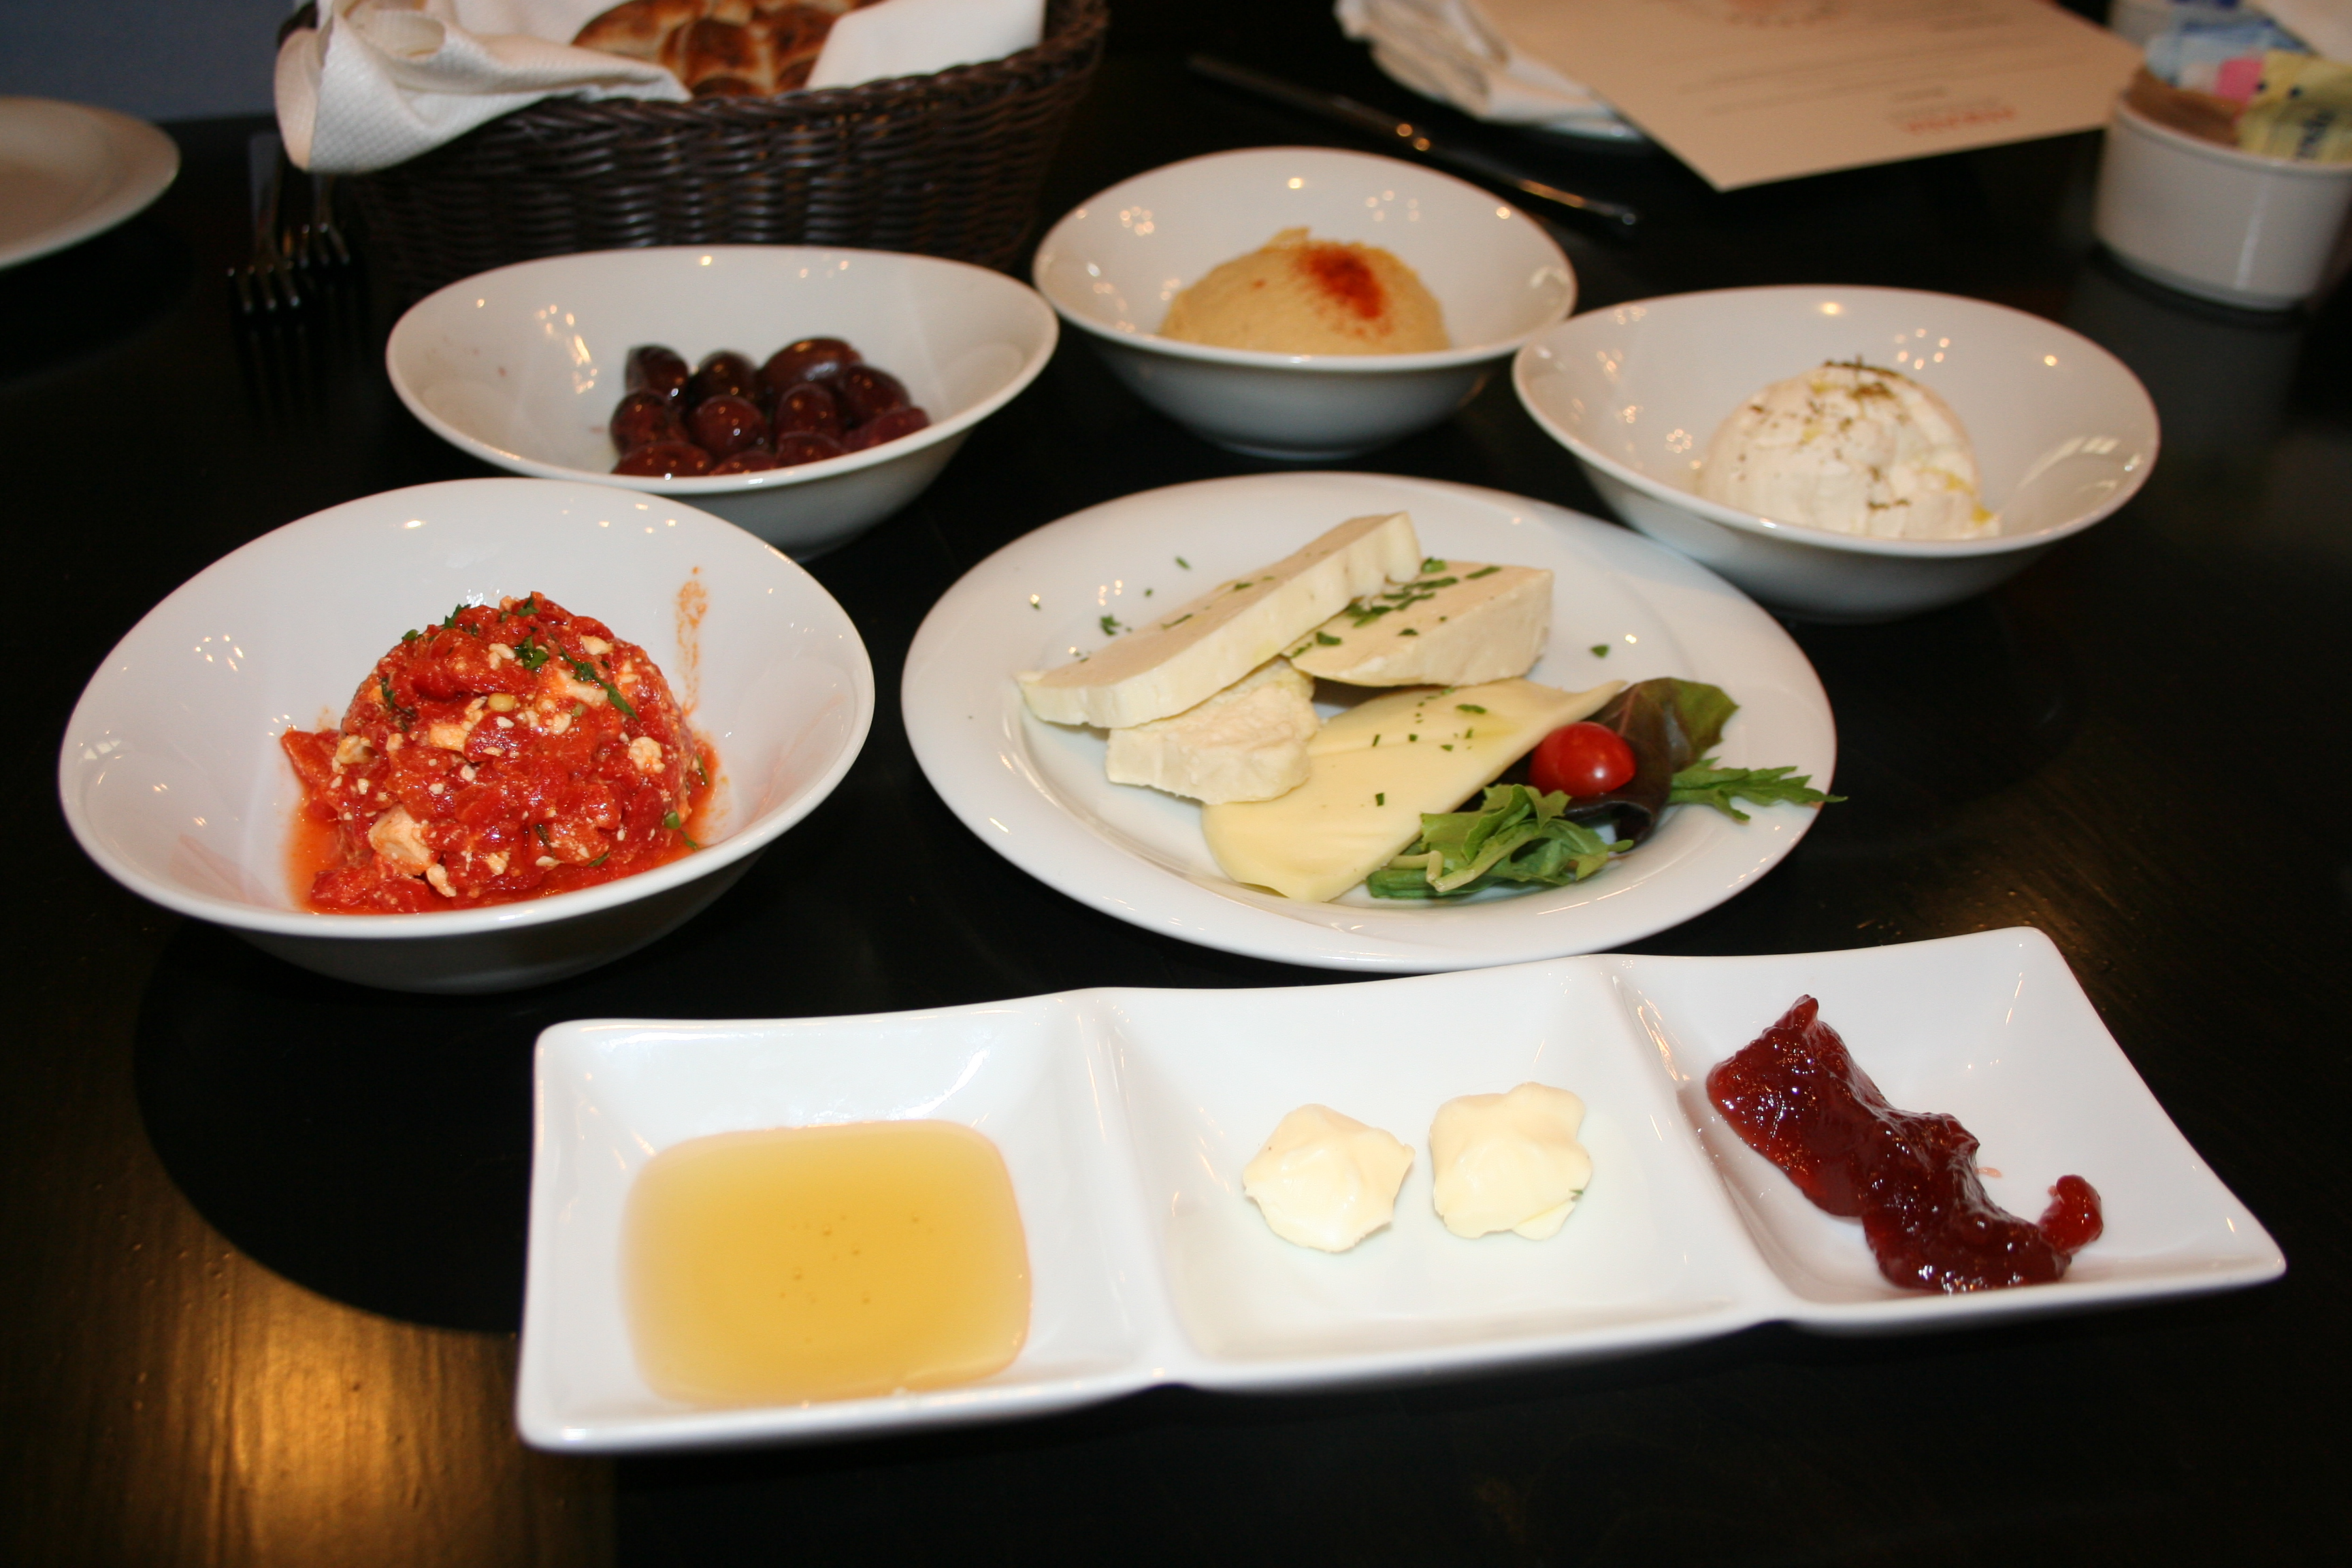 Brunch at Ankara starts with van kahvaltisi, a selection of sweet and savory small plates and Turkish bread. (Photo: Mark Heckathorn/DC on Heels)